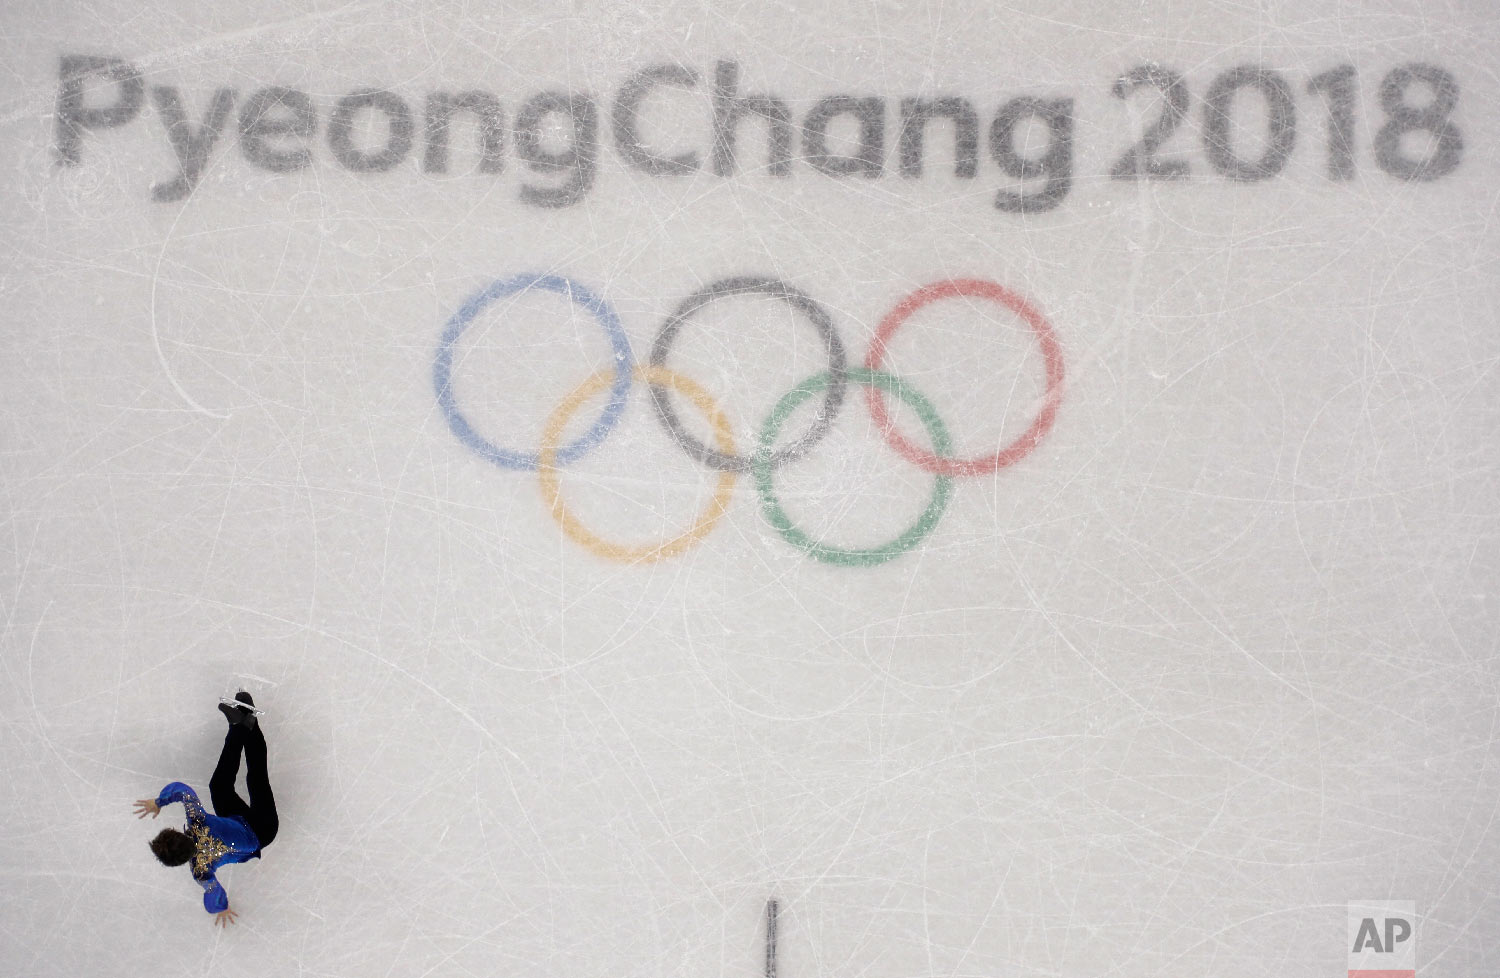 Shoma Uno of Japan falls during the men's free figure skating final in the Gangneung Ice Arena at the 2018 Winter Olympics in Gangneung, South Korea, Saturday, Feb. 17, 2018. (AP Photo/Morry Gash)